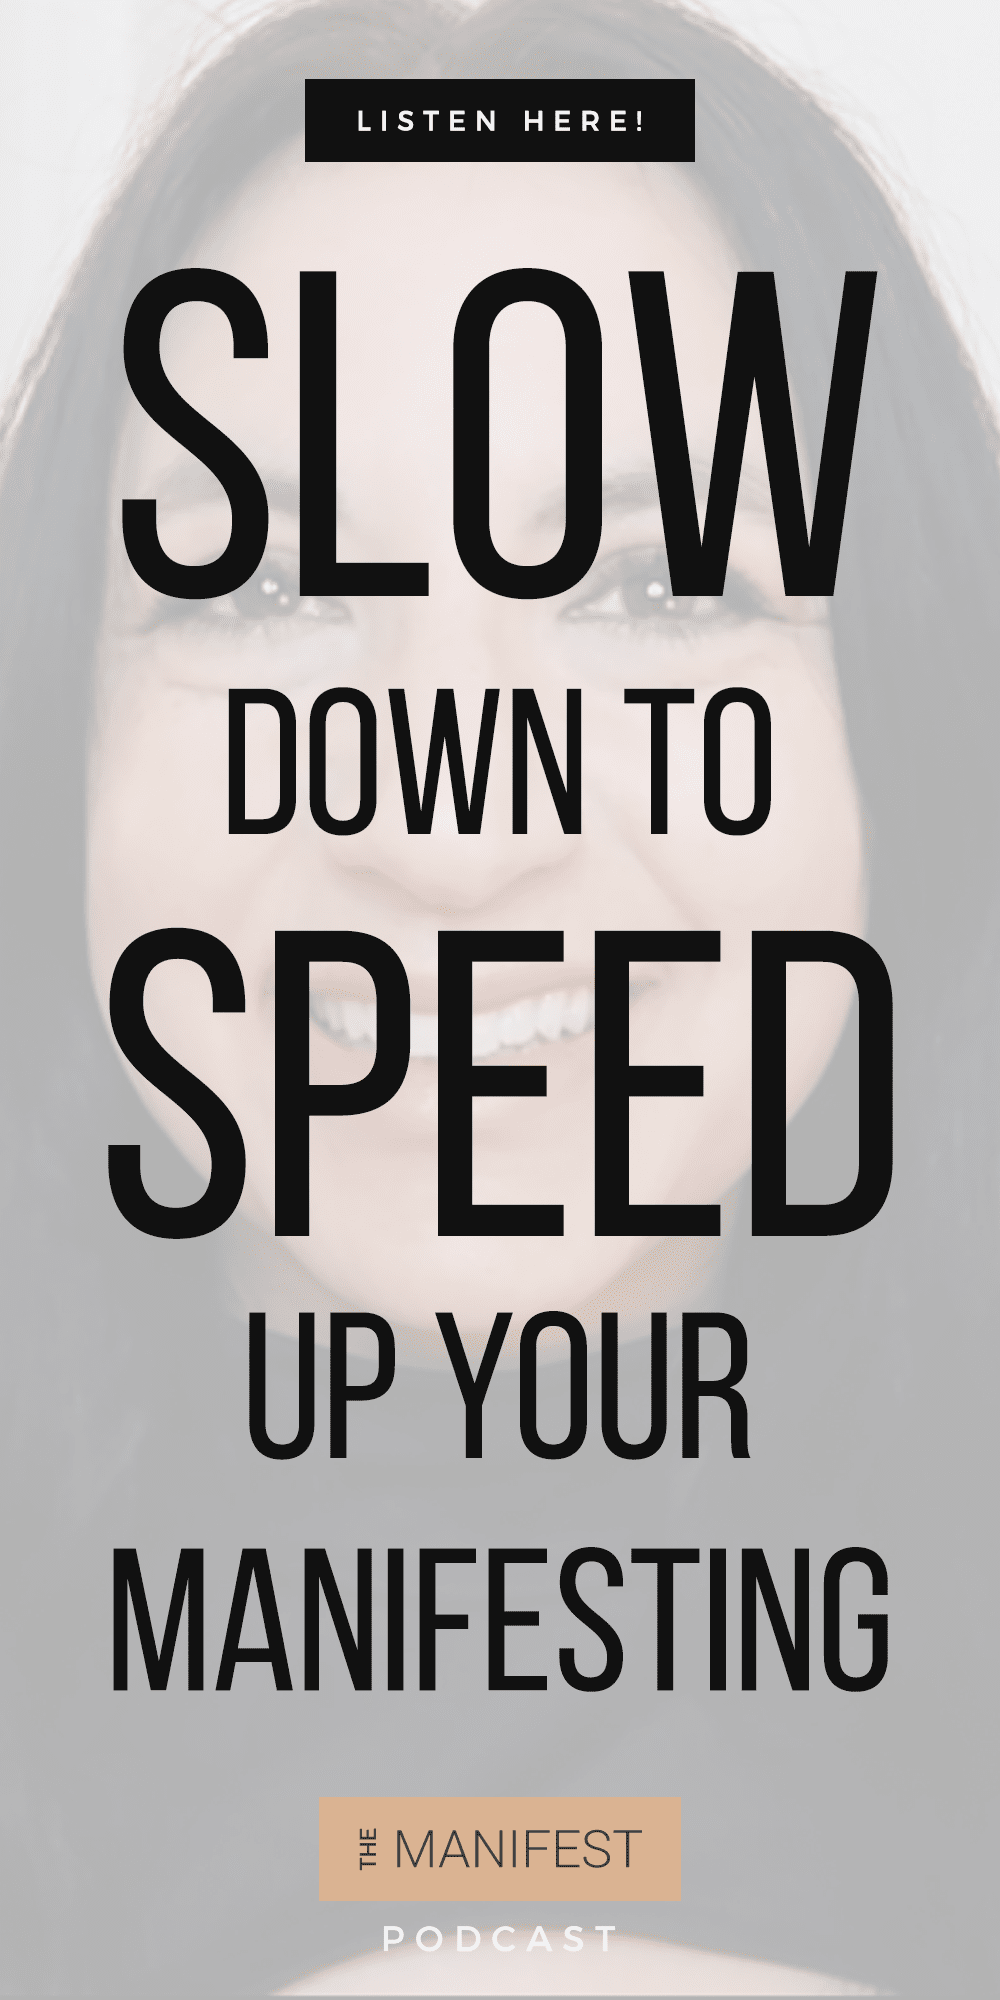 Jenn Stevens with text Episode #32: Slowing Down To Speed Up Your Manifesting